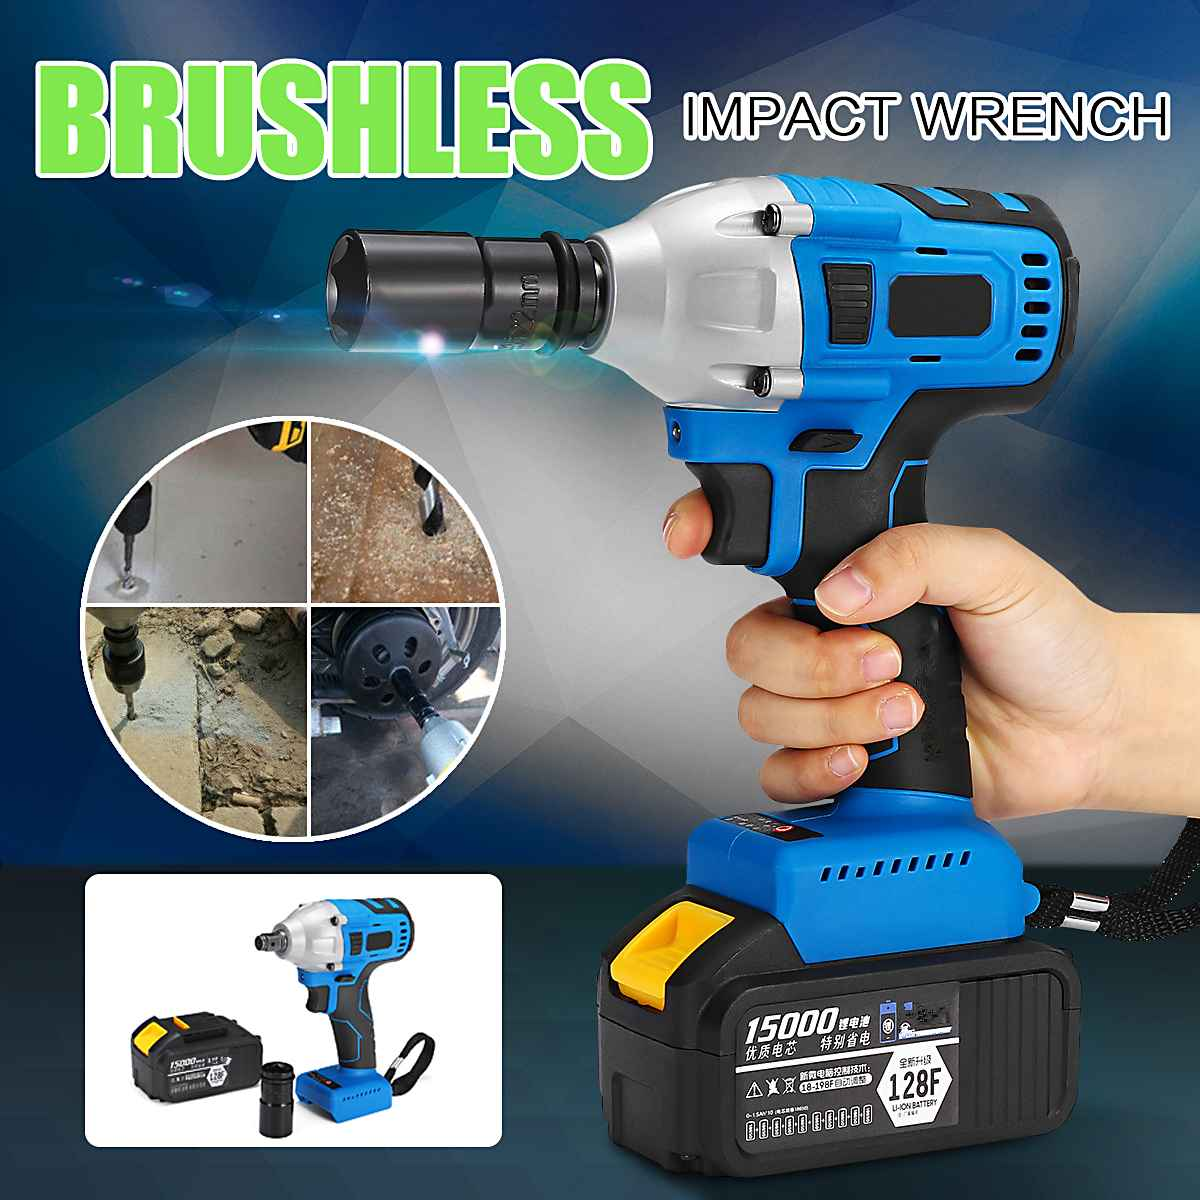 128/188/208F Brushless Cordless Electric  Impact Wrench 1/2 Torque Universal Wrench Rechargeable Battery Power Driver Tools128/188/208F Brushless Cordless Electric  Impact Wrench 1/2 Torque Universal Wrench Rechargeable Battery Power Driver Tools